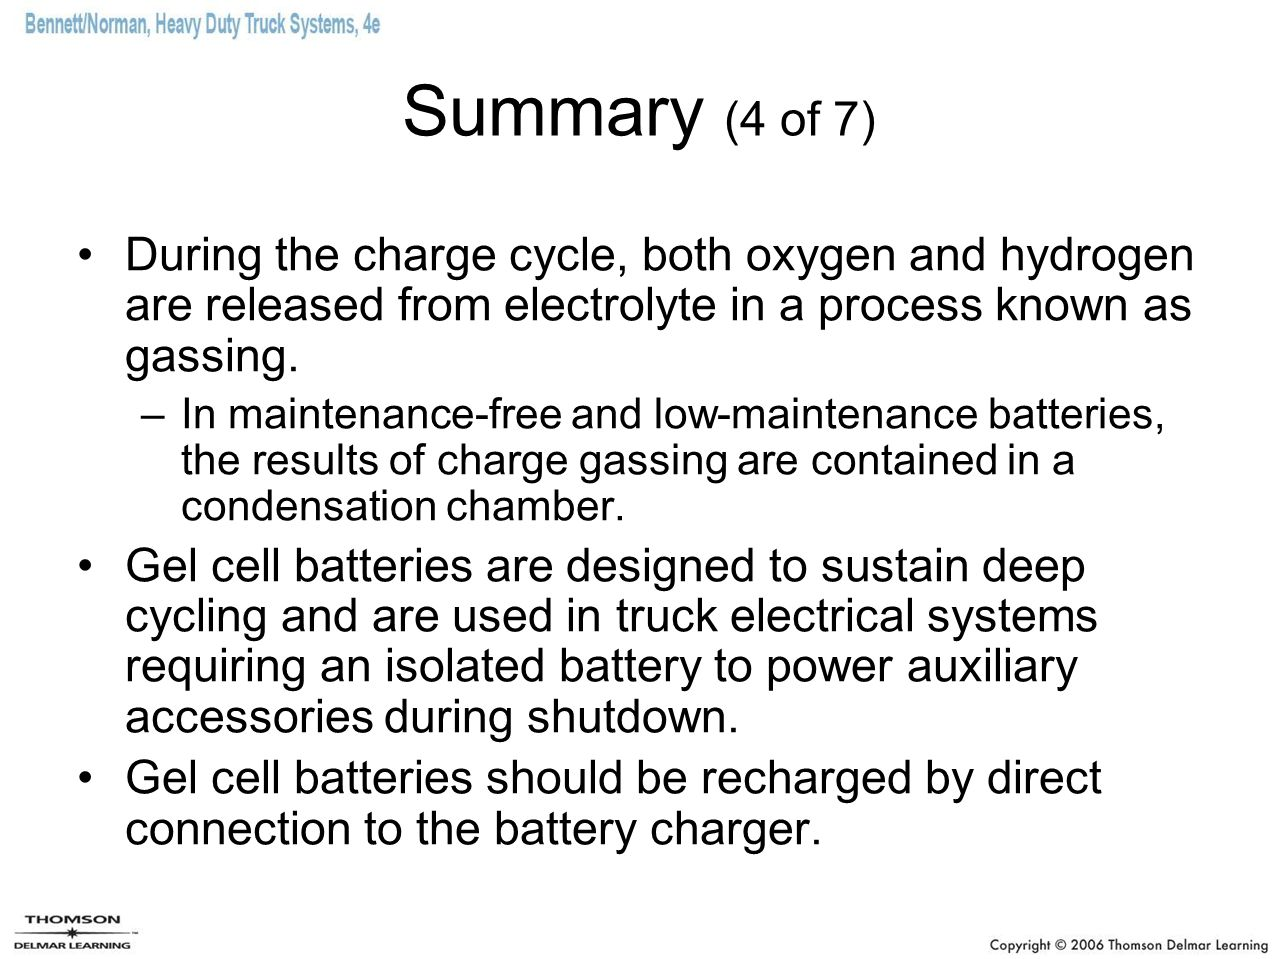 Summary (4 of 7) During the charge cycle, both oxygen and hydrogen are released from electrolyte in a process known as gassing.